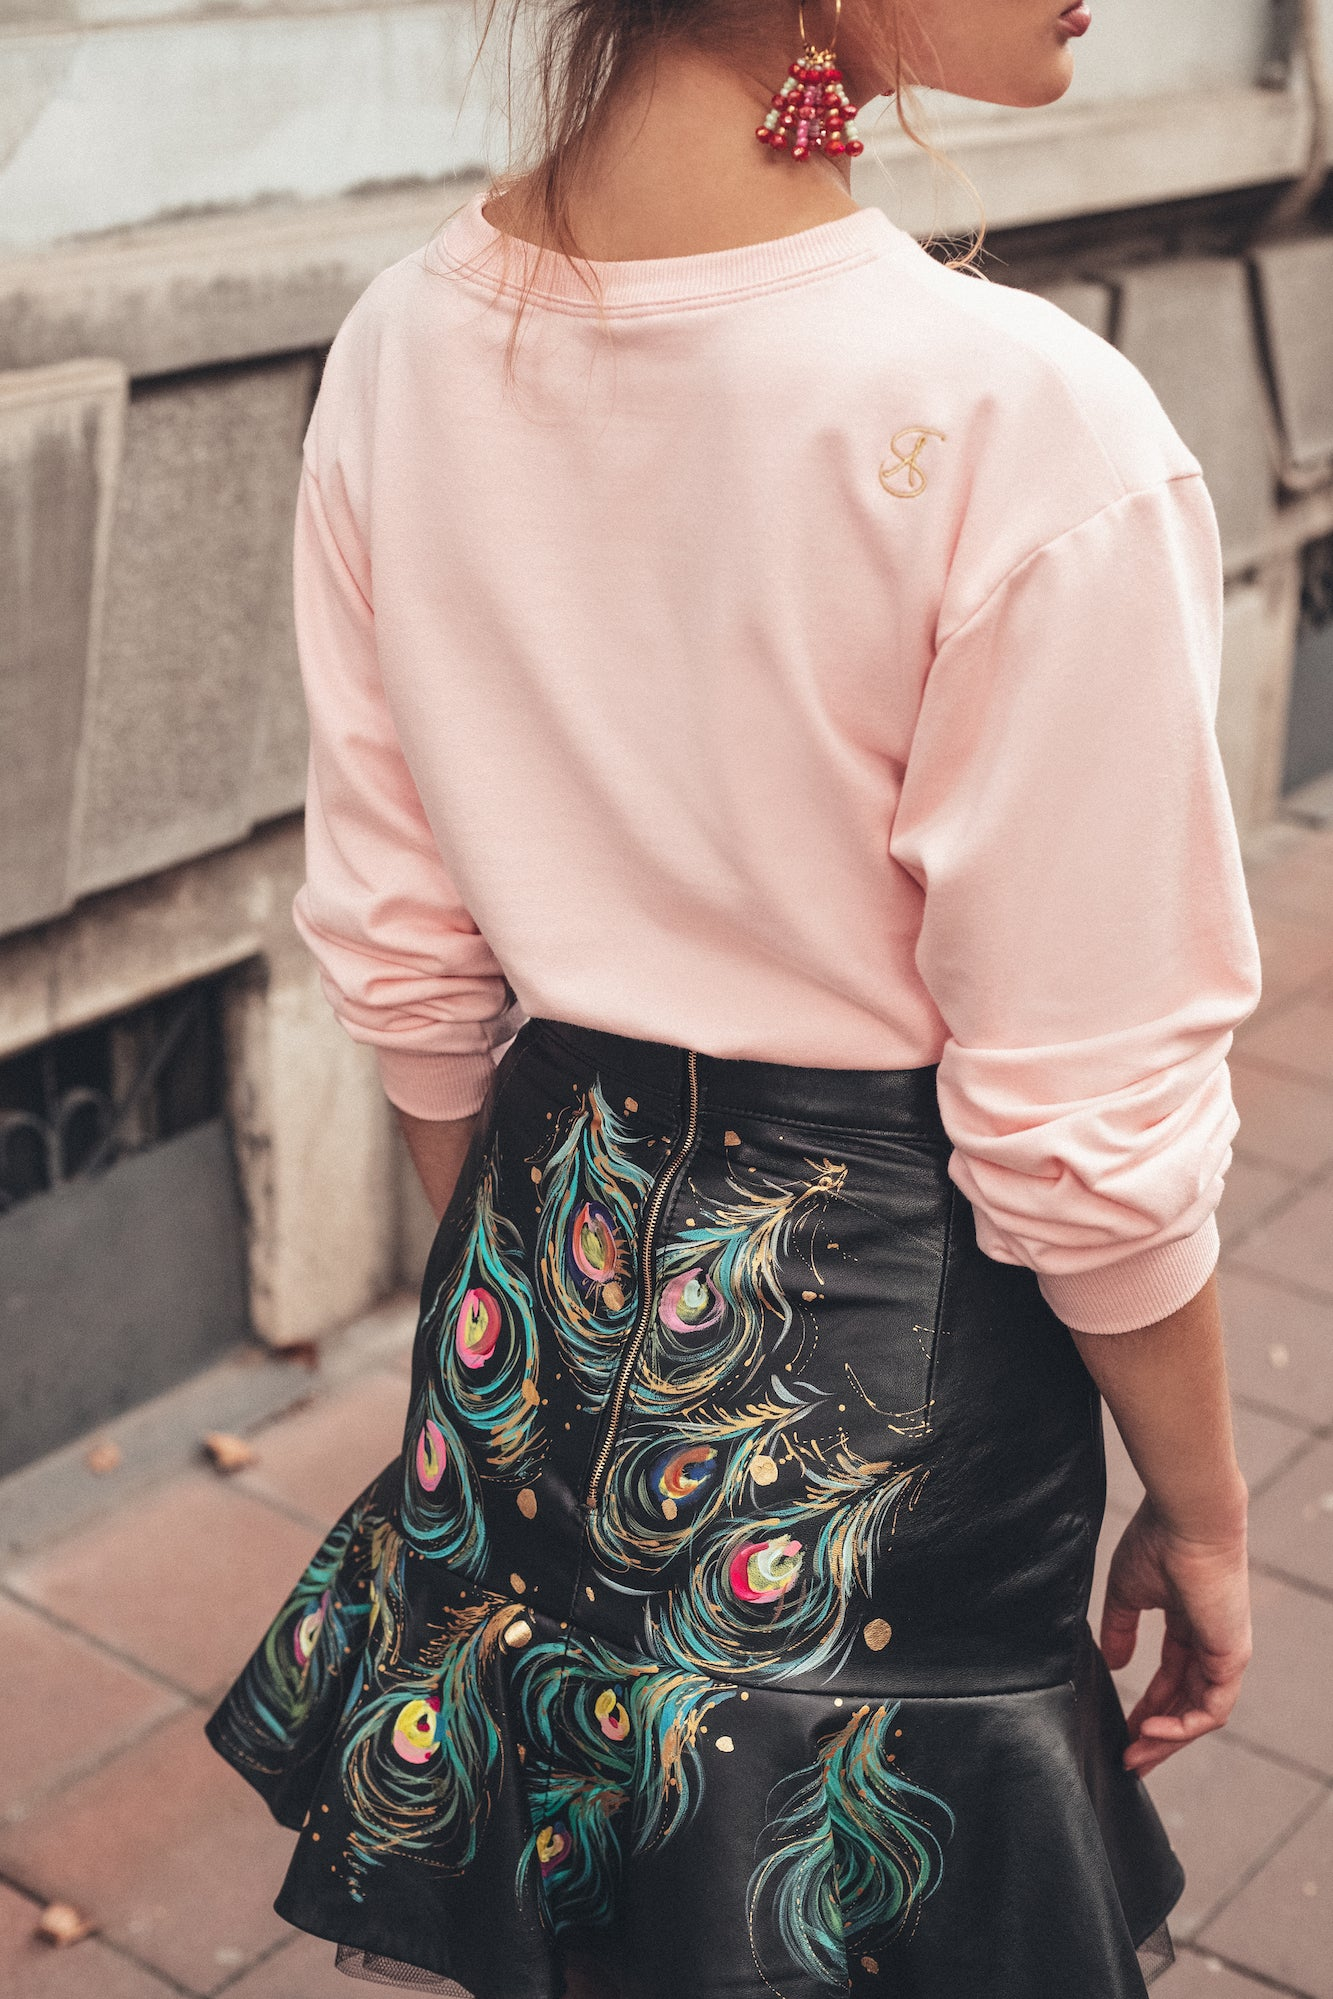 The Peacock Hand-Painted Leather Skirt